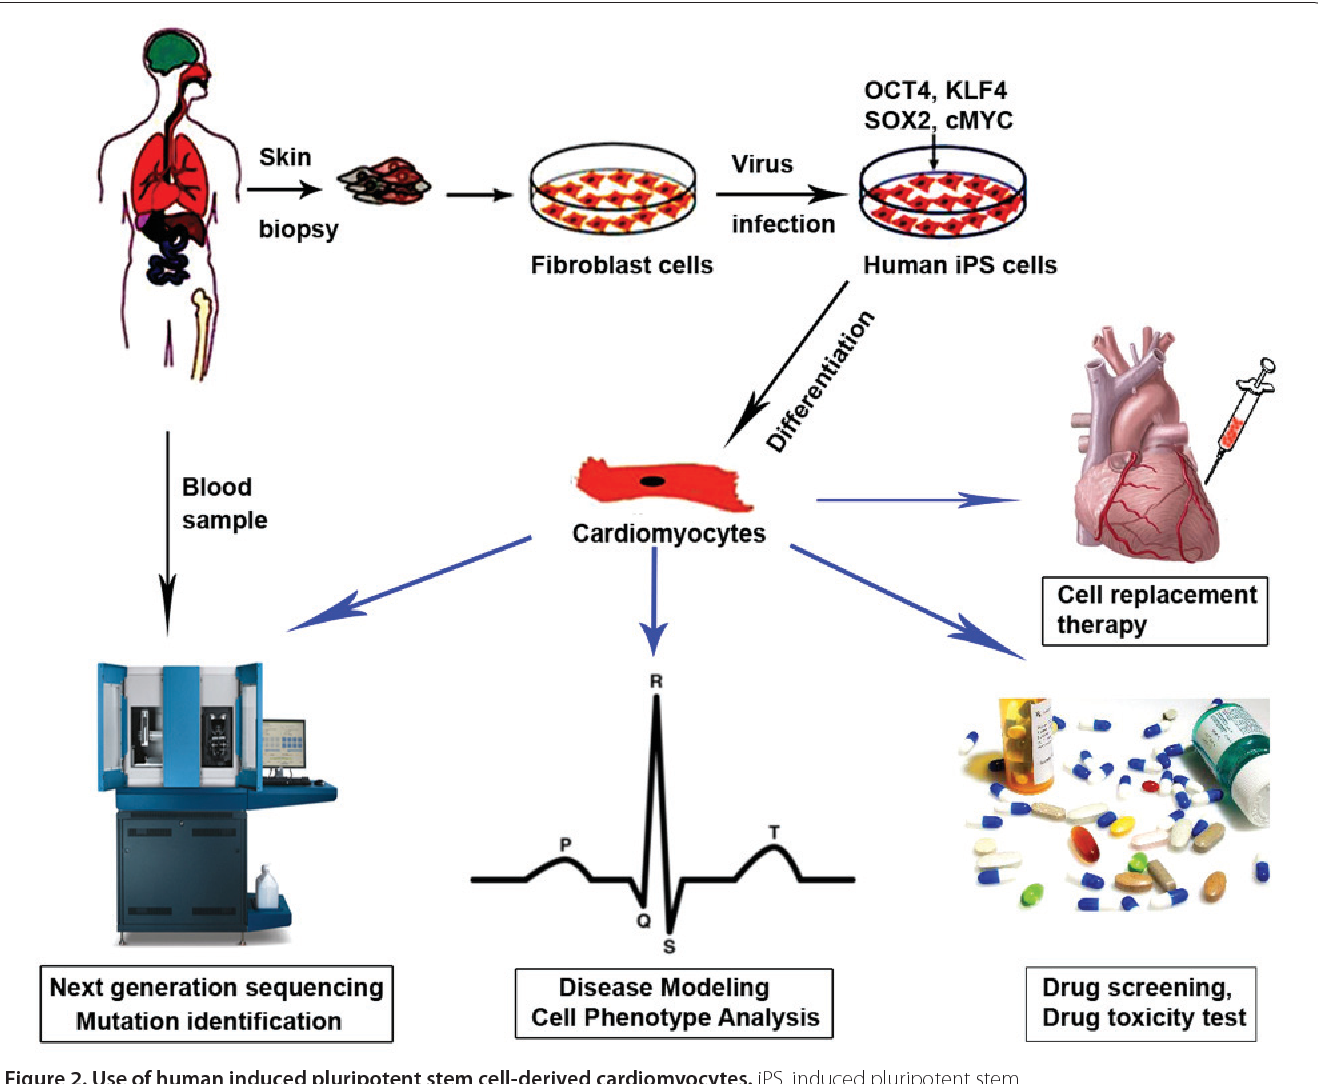 Uses of cardiomyocytes generated from induced pluripotent stem cells